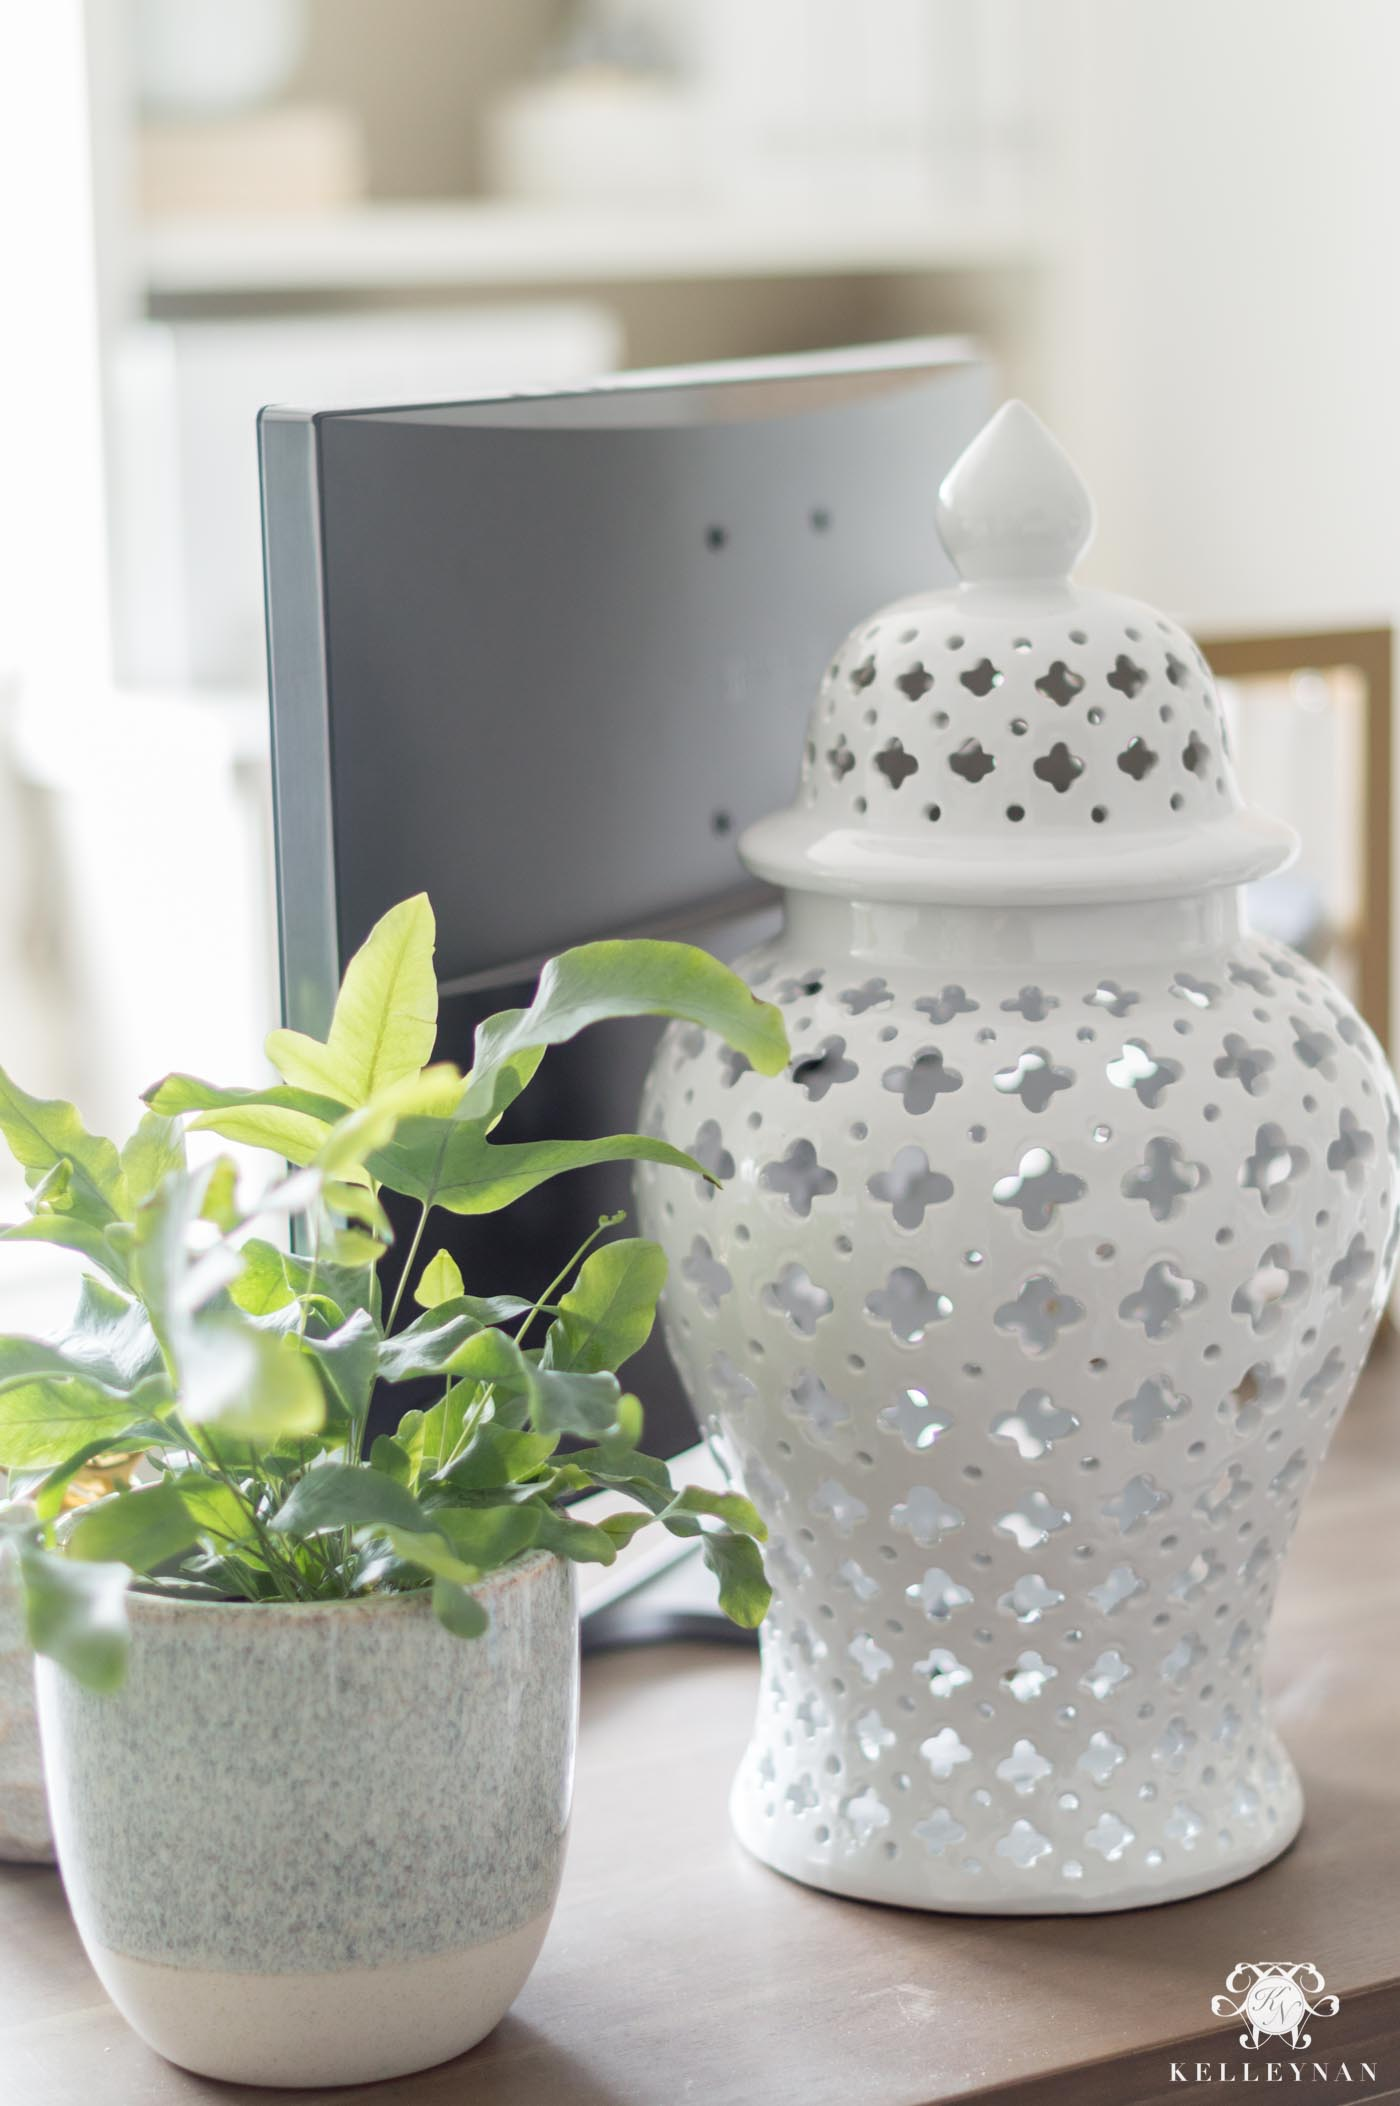 Spring decor and desktop plants